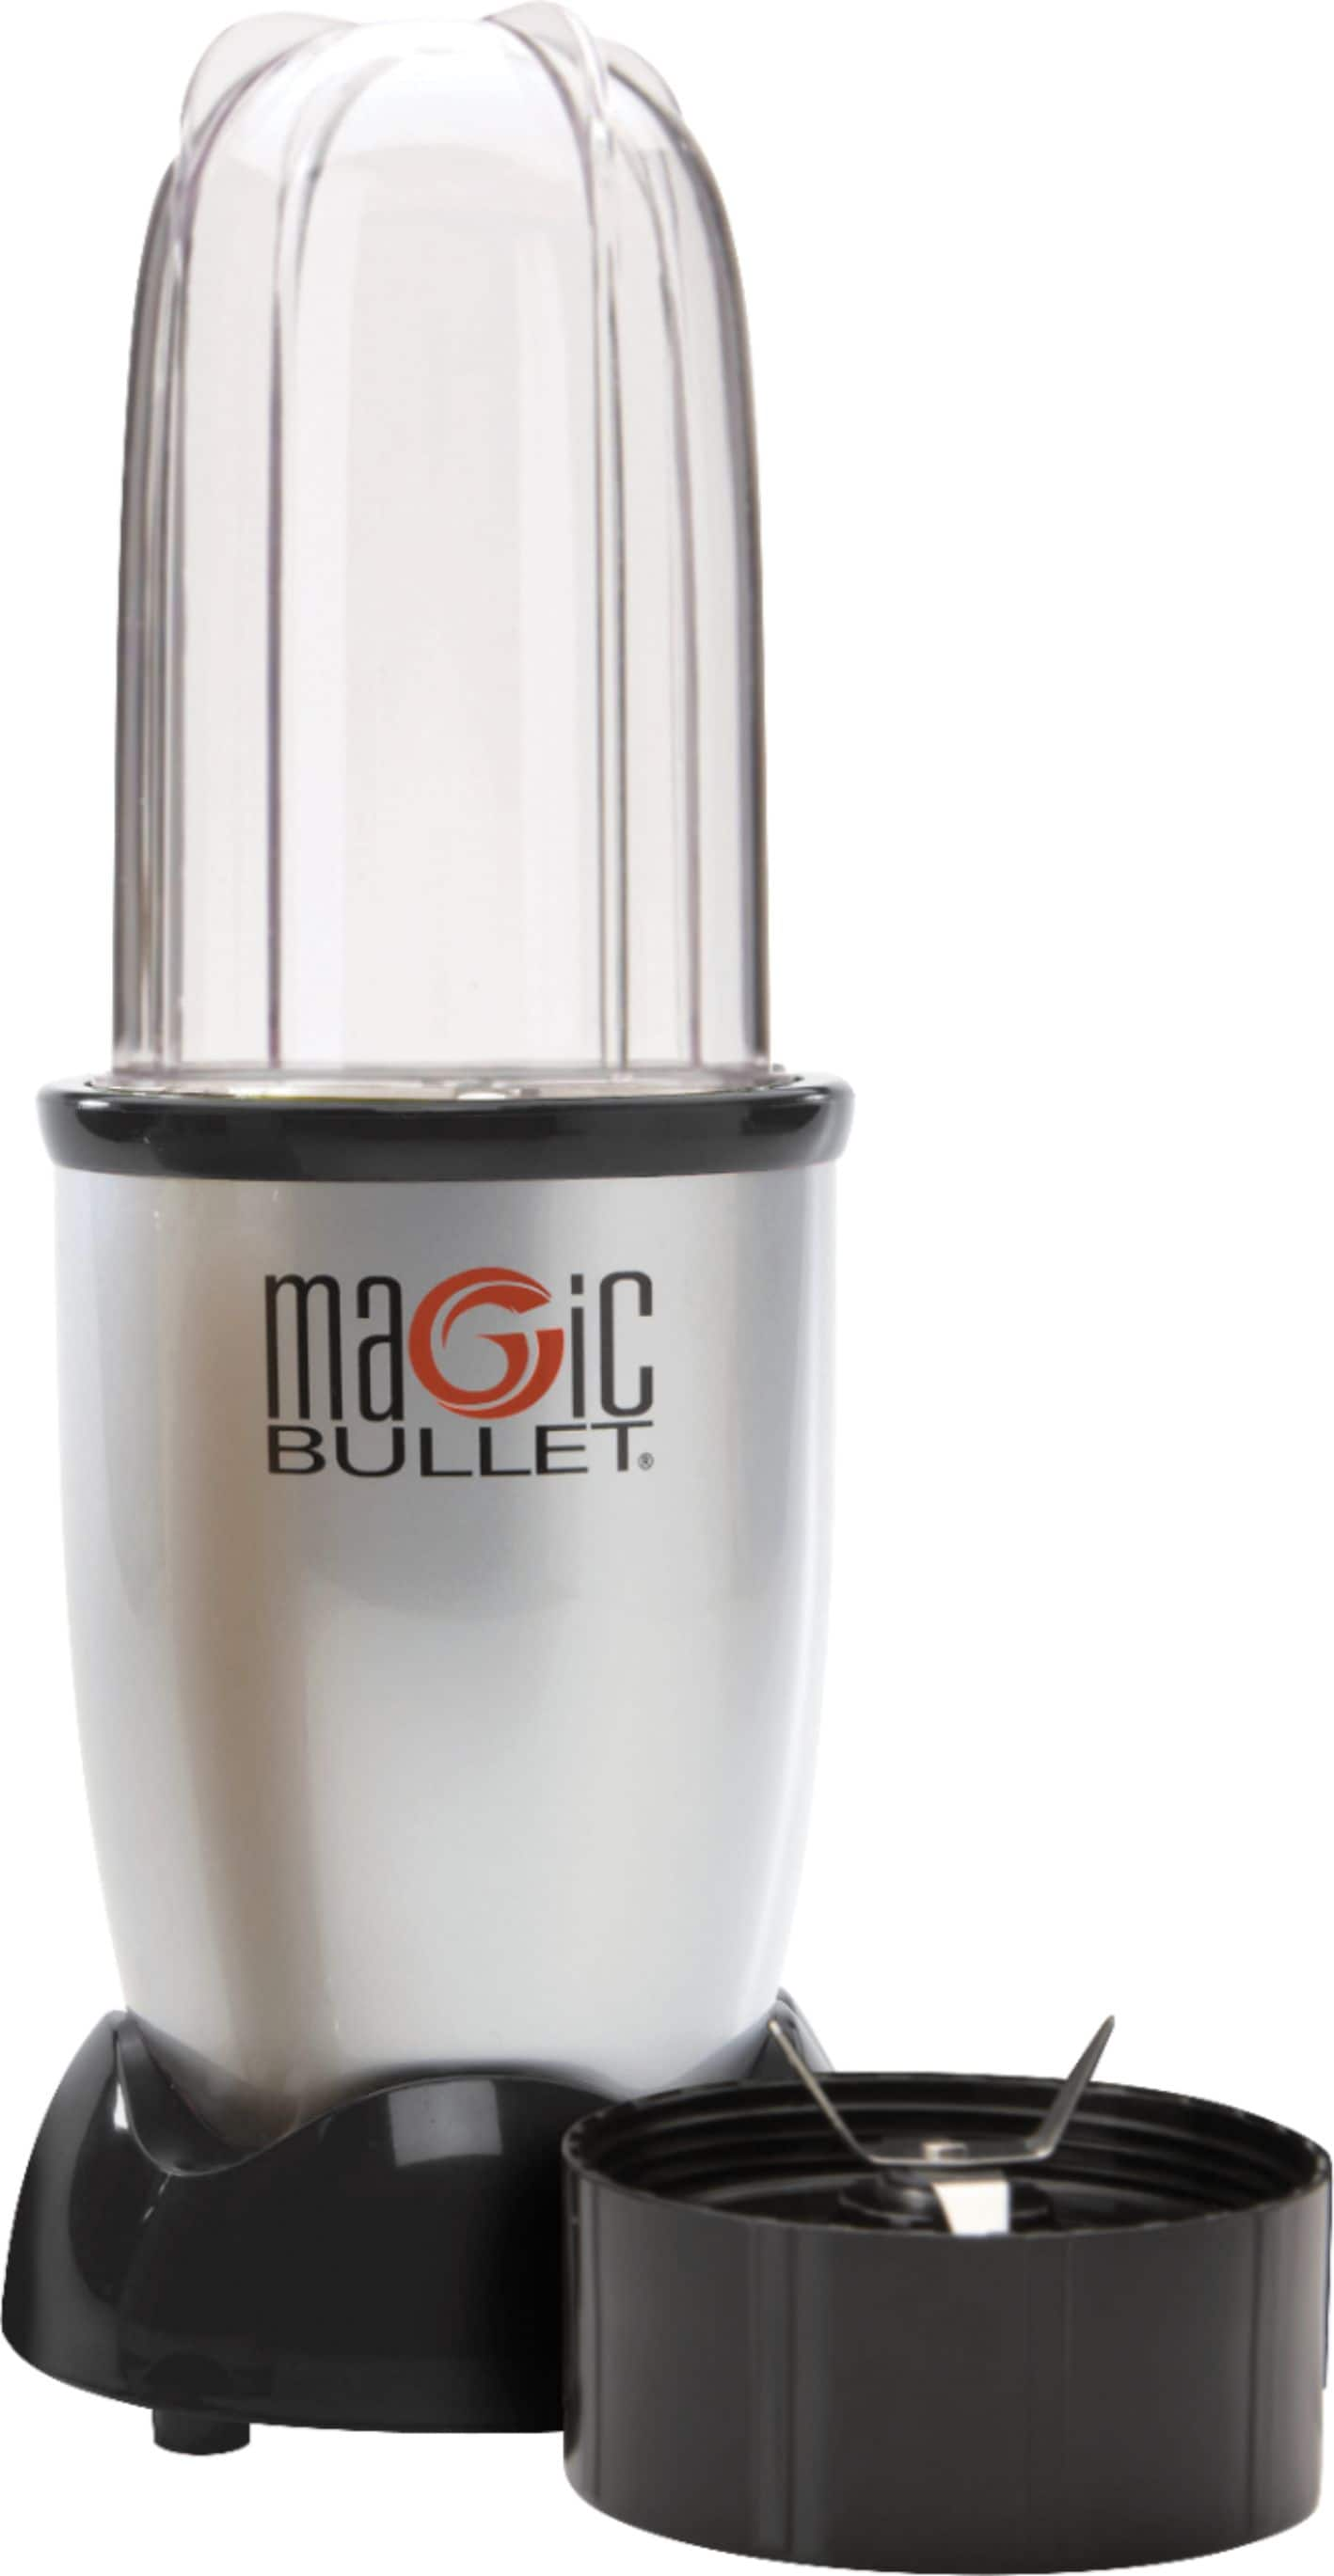 Magic Bullet Personal Blender - Silver- $14.99- Free Shipping or Pickup- Best Buy Deal of the Day